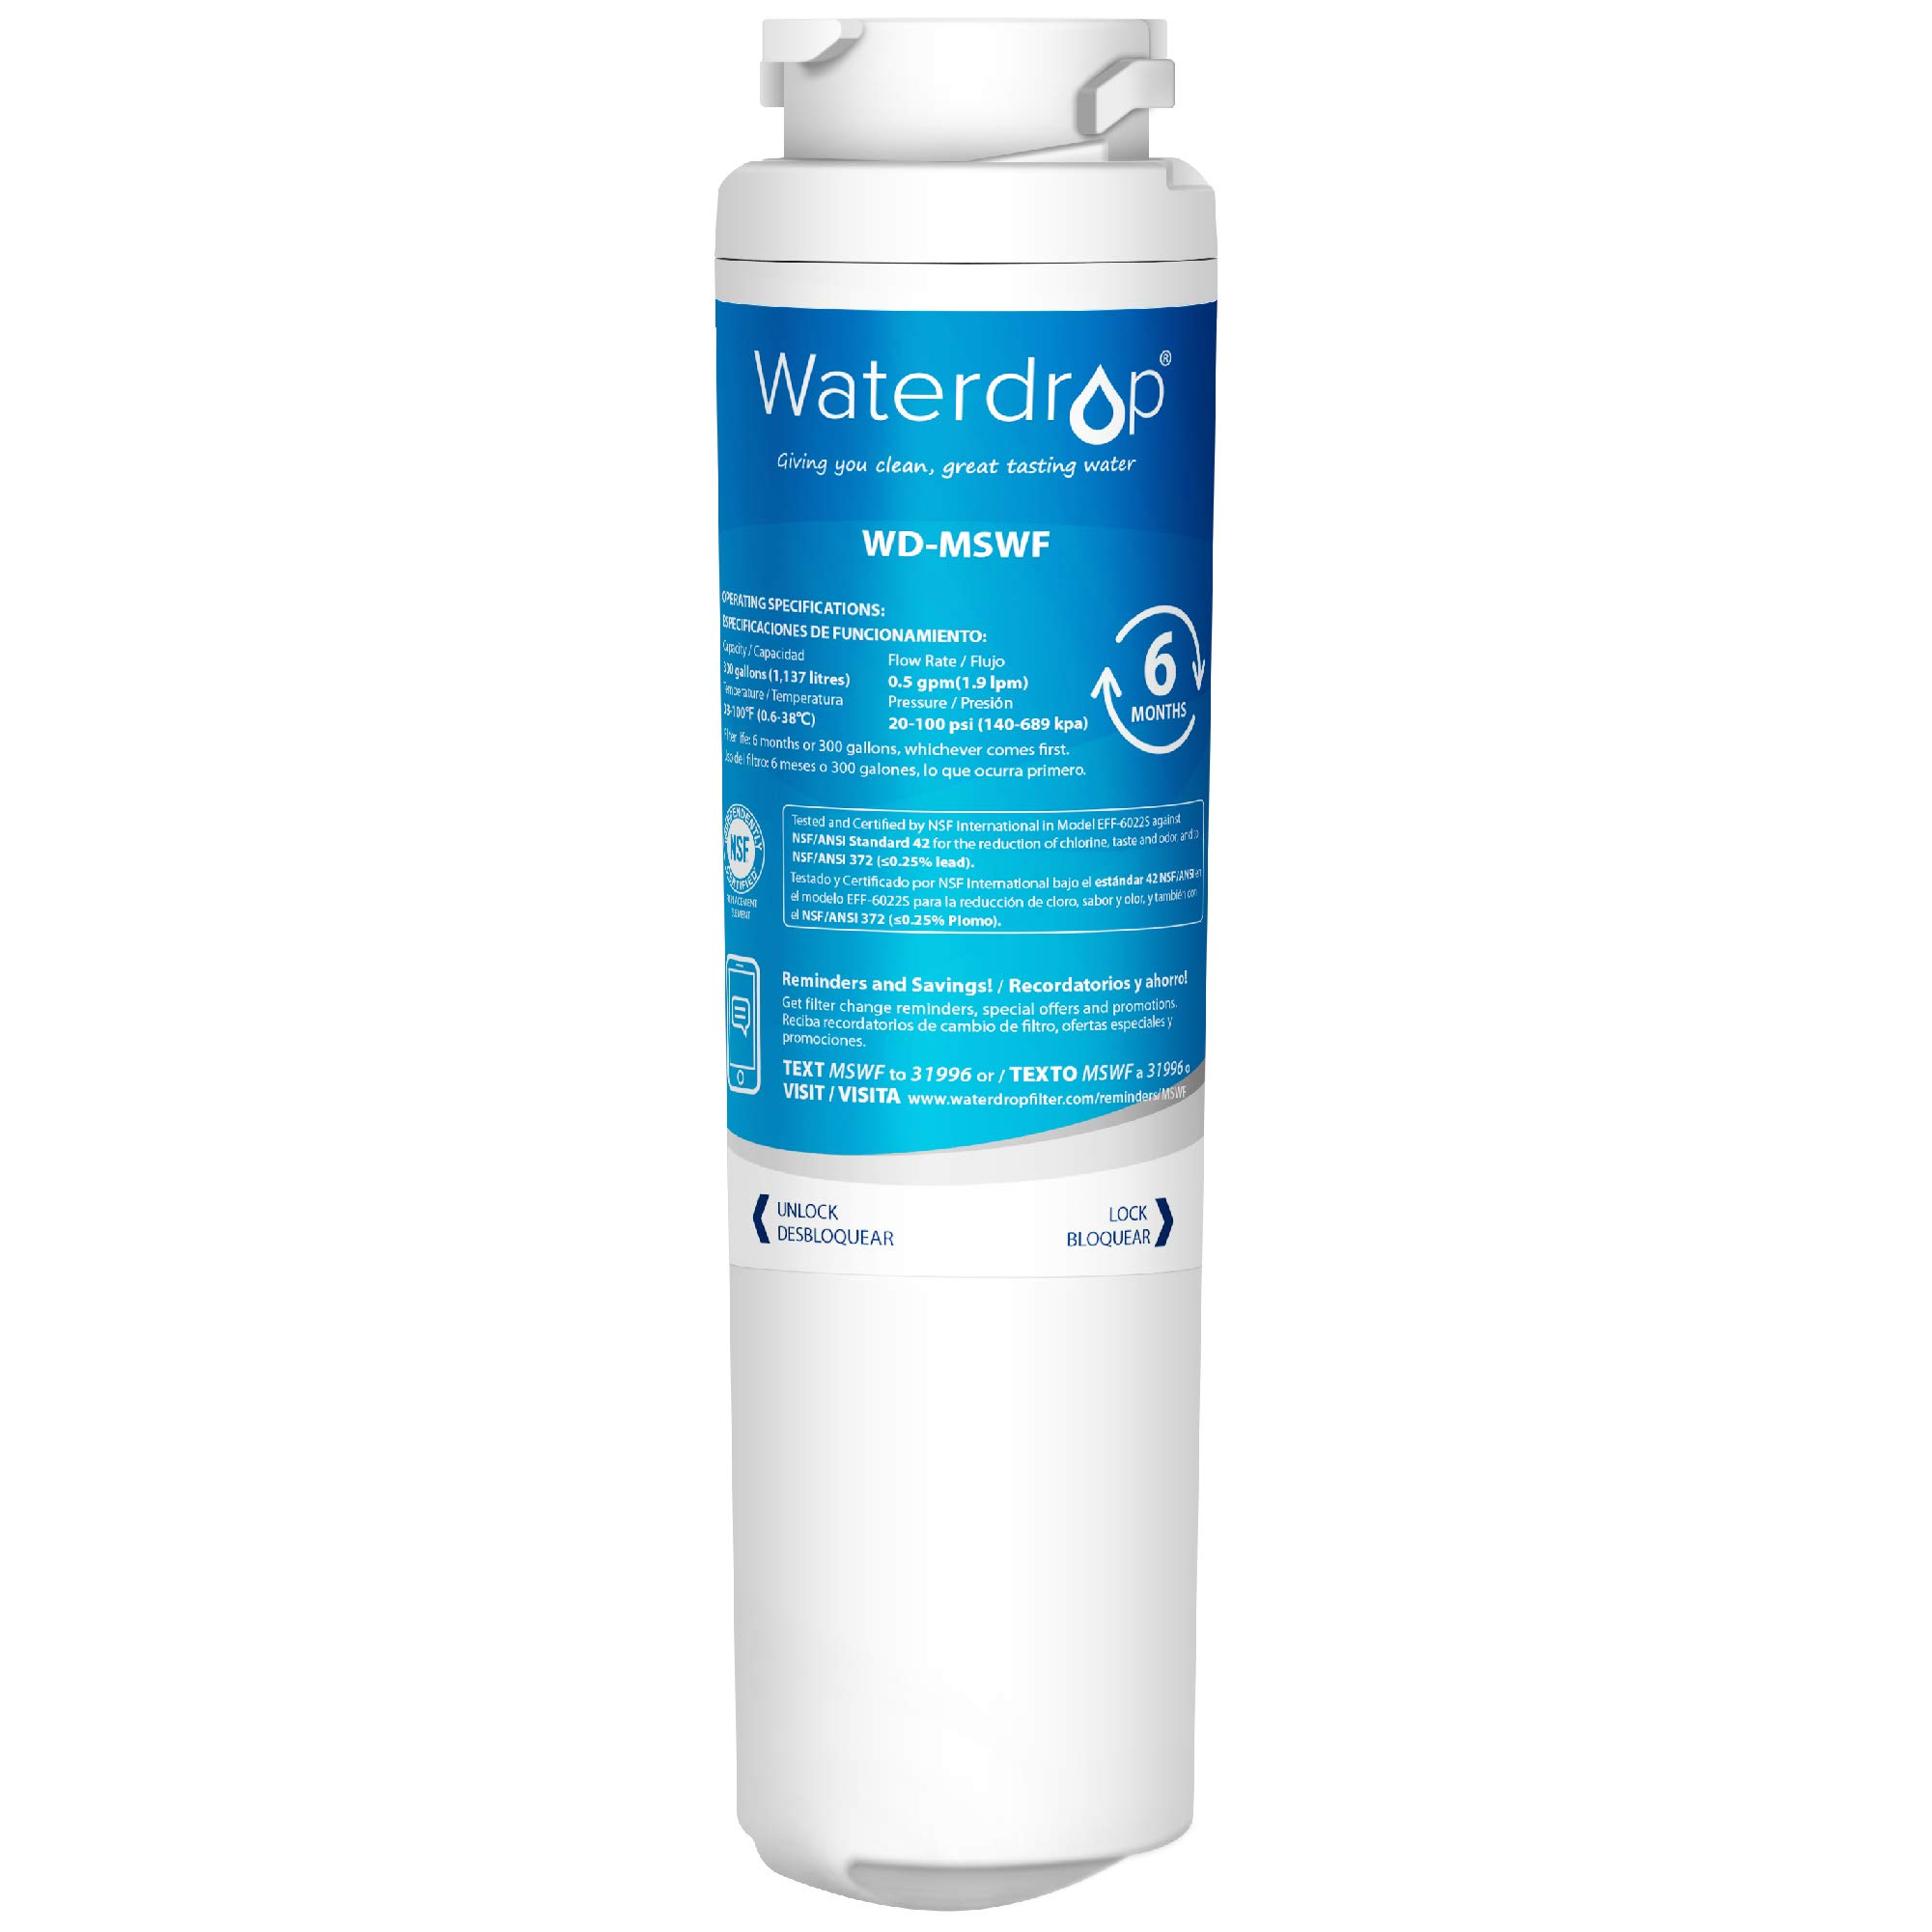 Waterdrop MSWF Replacement Refrigerator Water Filter, Compatible with GE MSWF, 101820A, 101821B, 101821-B-Standard